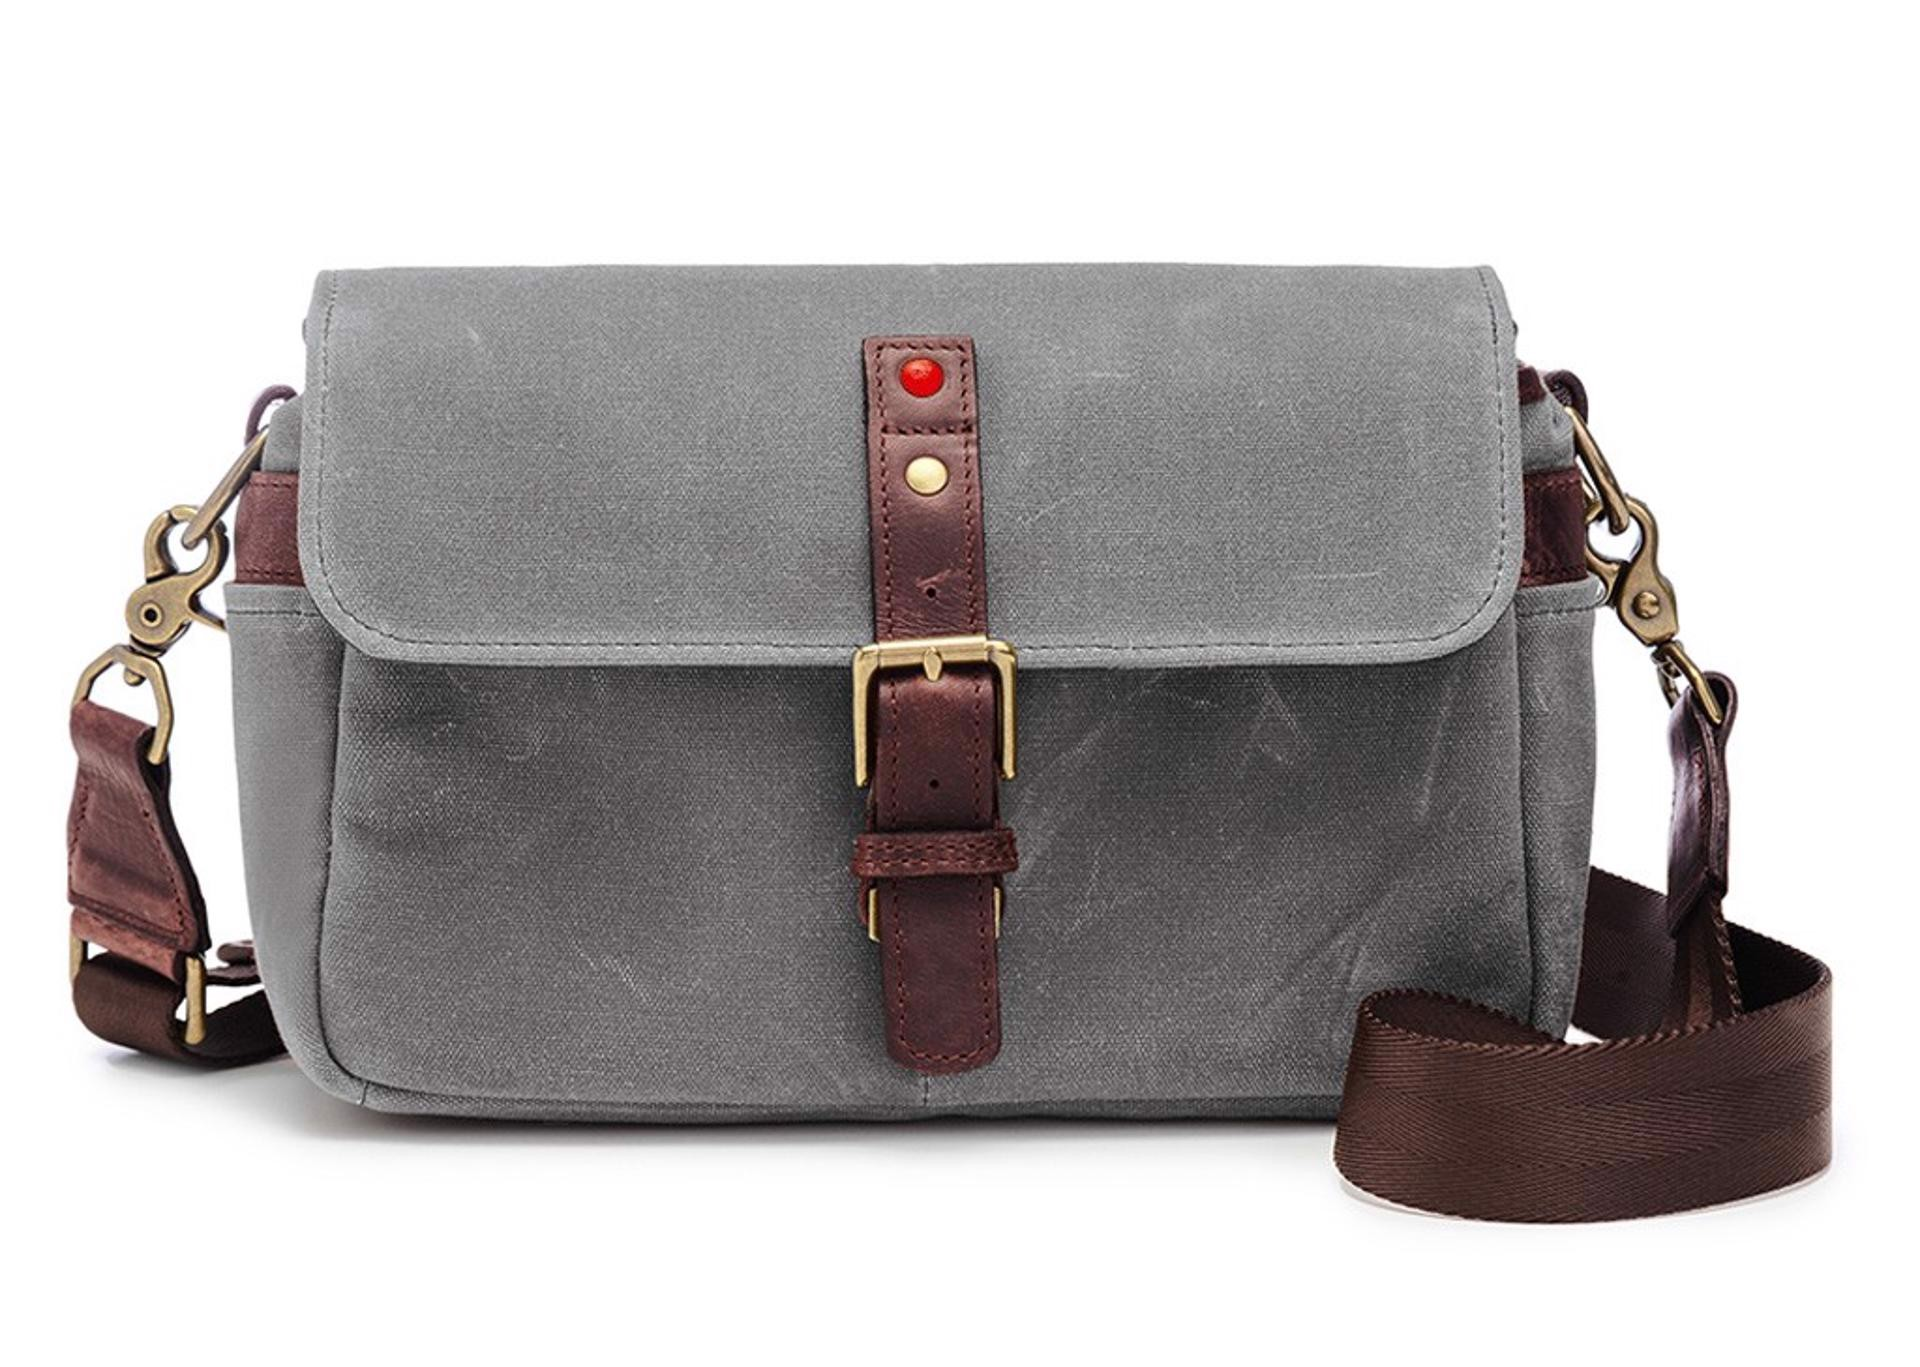 LEICA COLLECTION BY ONA, BOWERY CAMERA BAG - Smoke